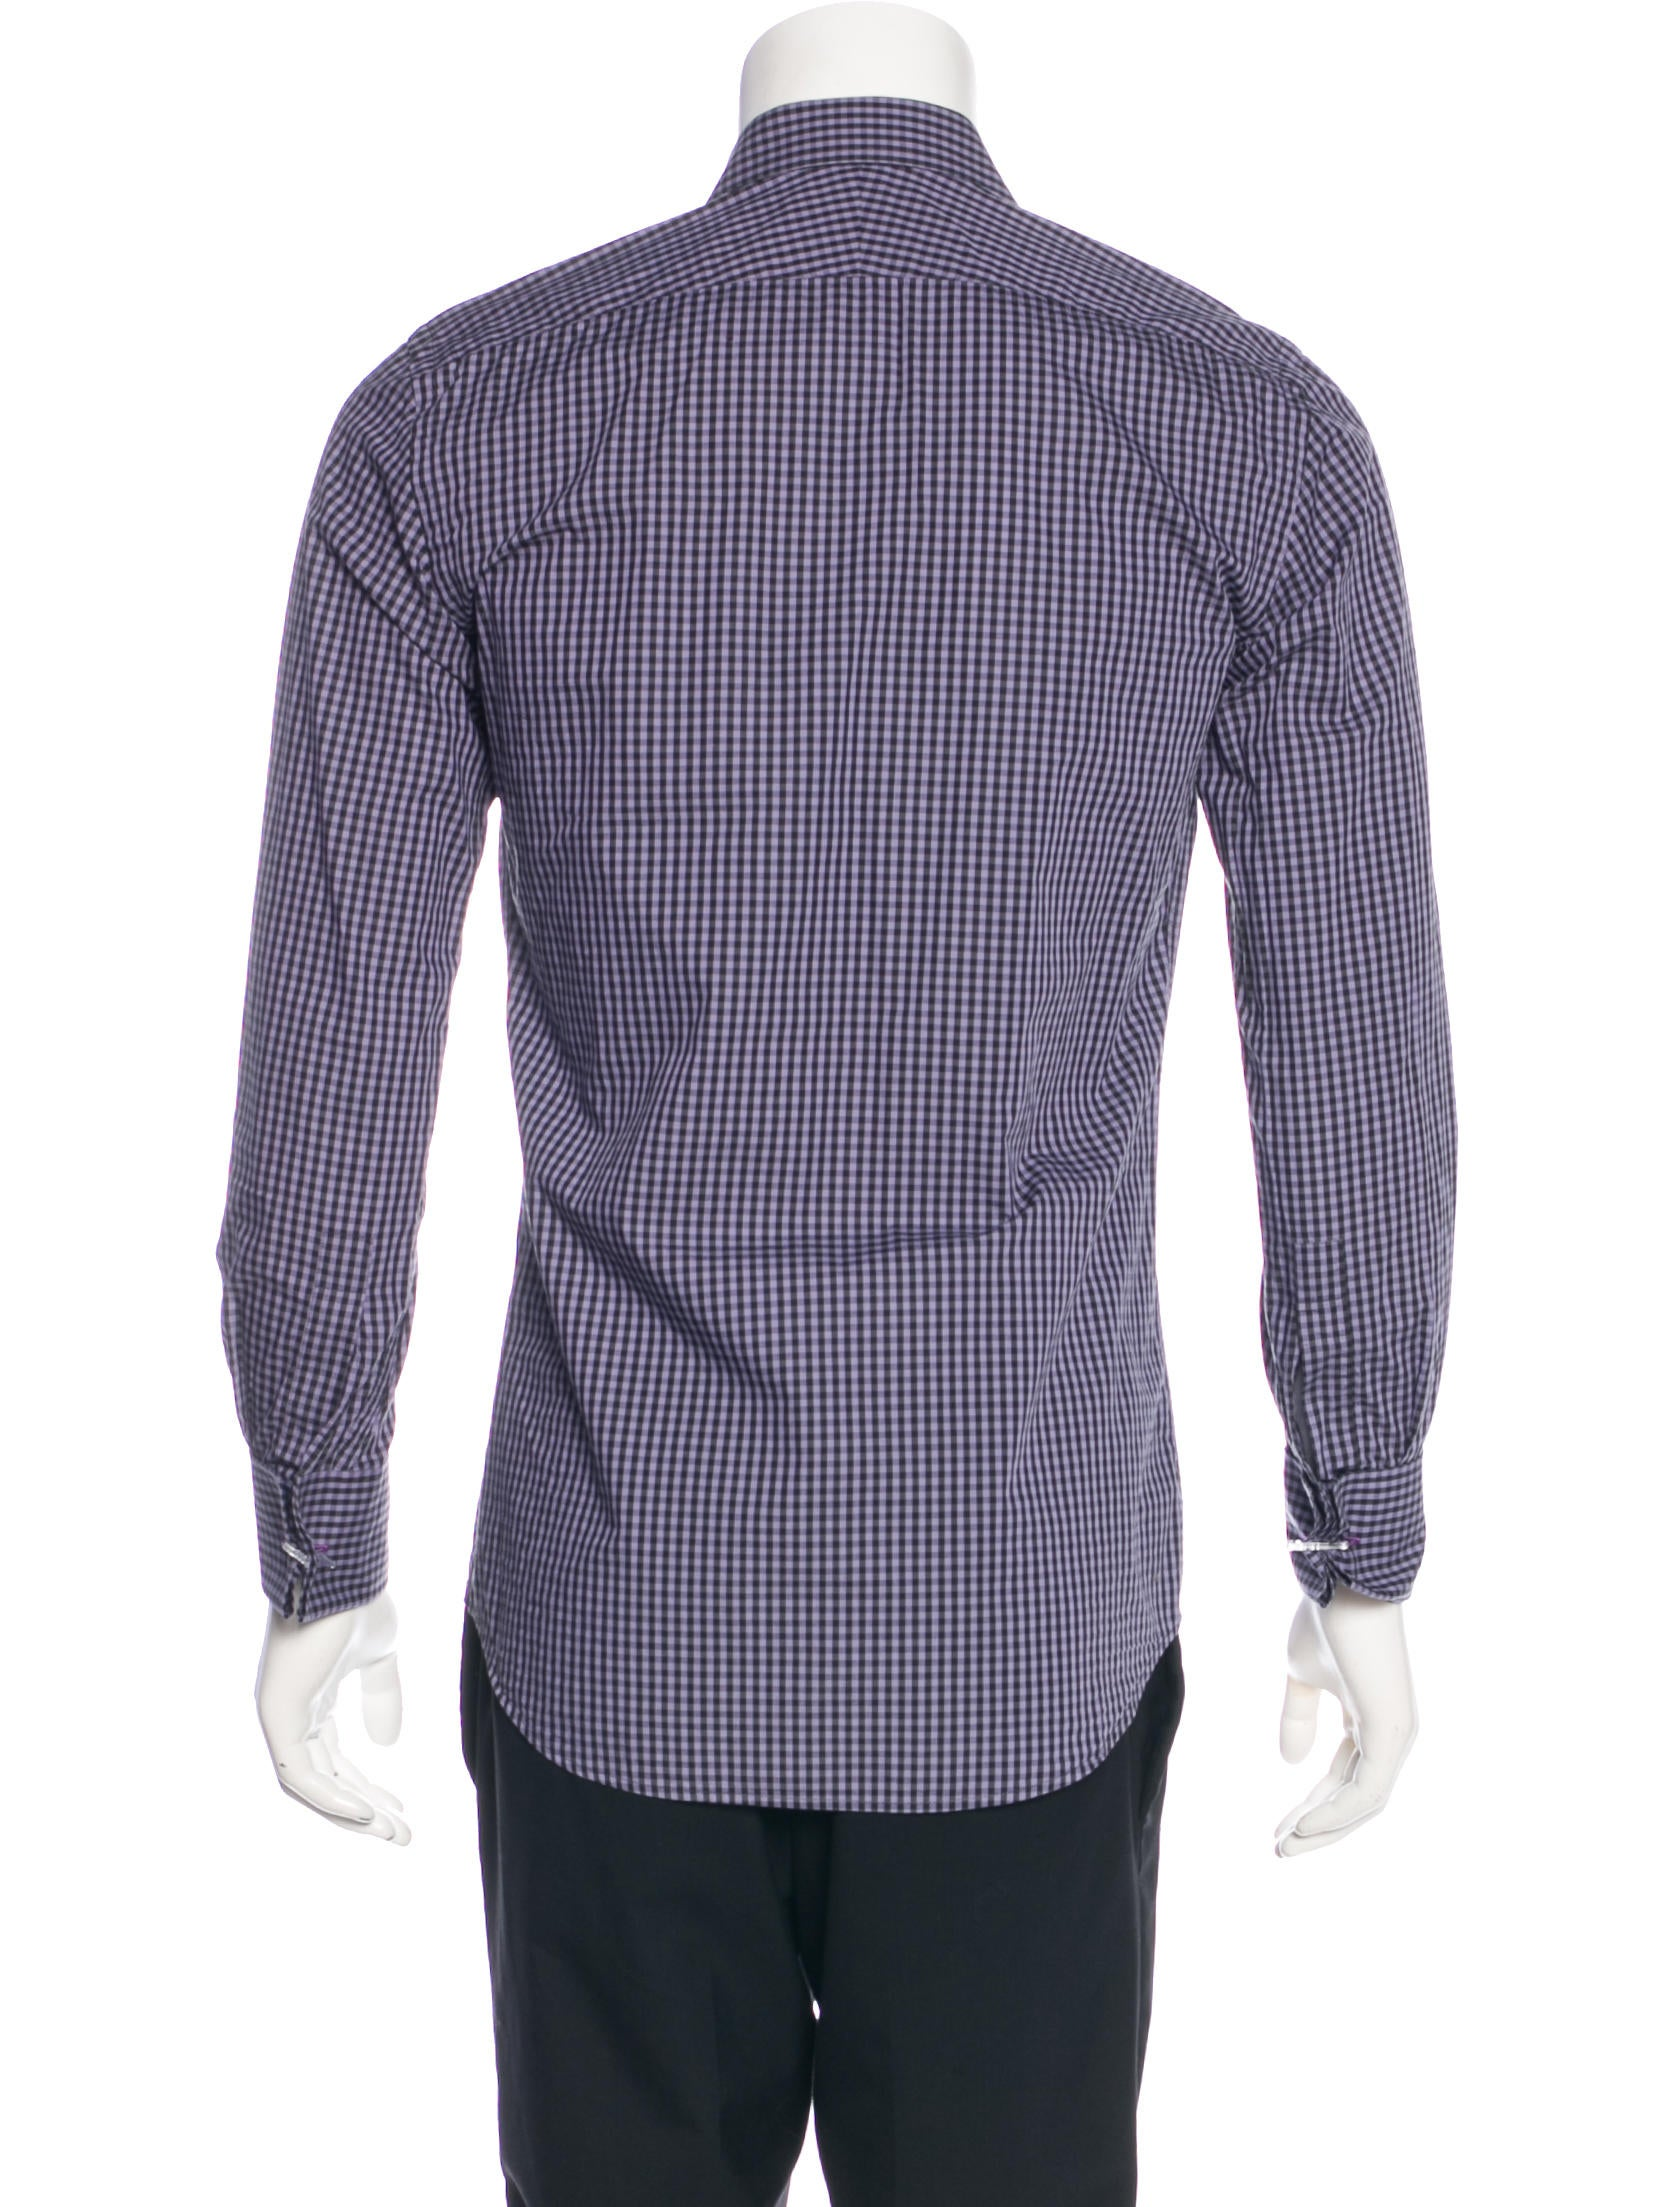 Paul Smith Slim Fit French Cuff Gingham Shirt Clothing